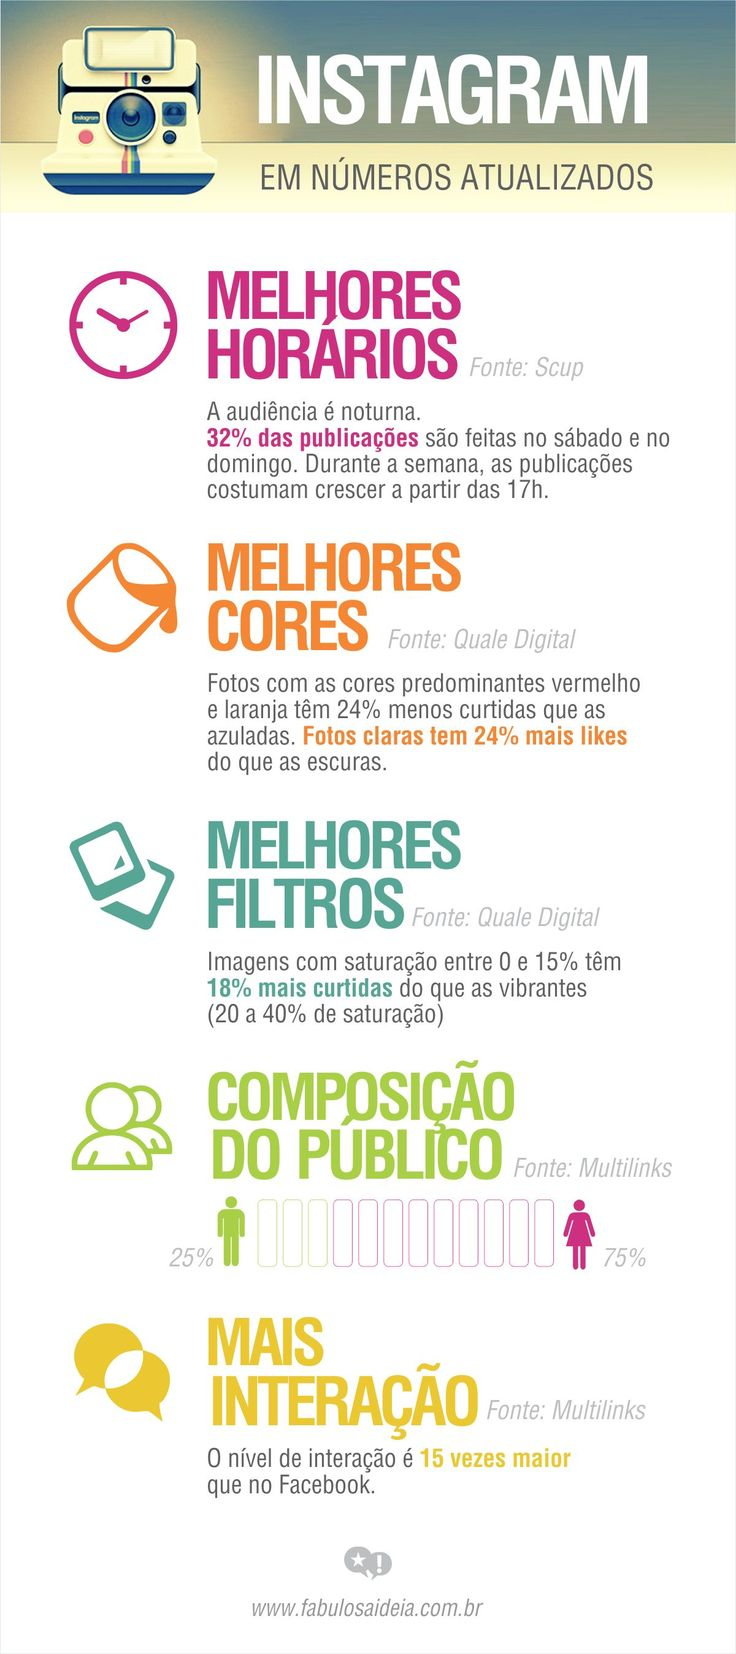 Instagram - melhores horários e infos - fev 2015 Leia os nossos artigos sobre Marketing Digital no Blog Estratégia Digital em http://www.estrategiadigital.pt/category/marketing-digital/